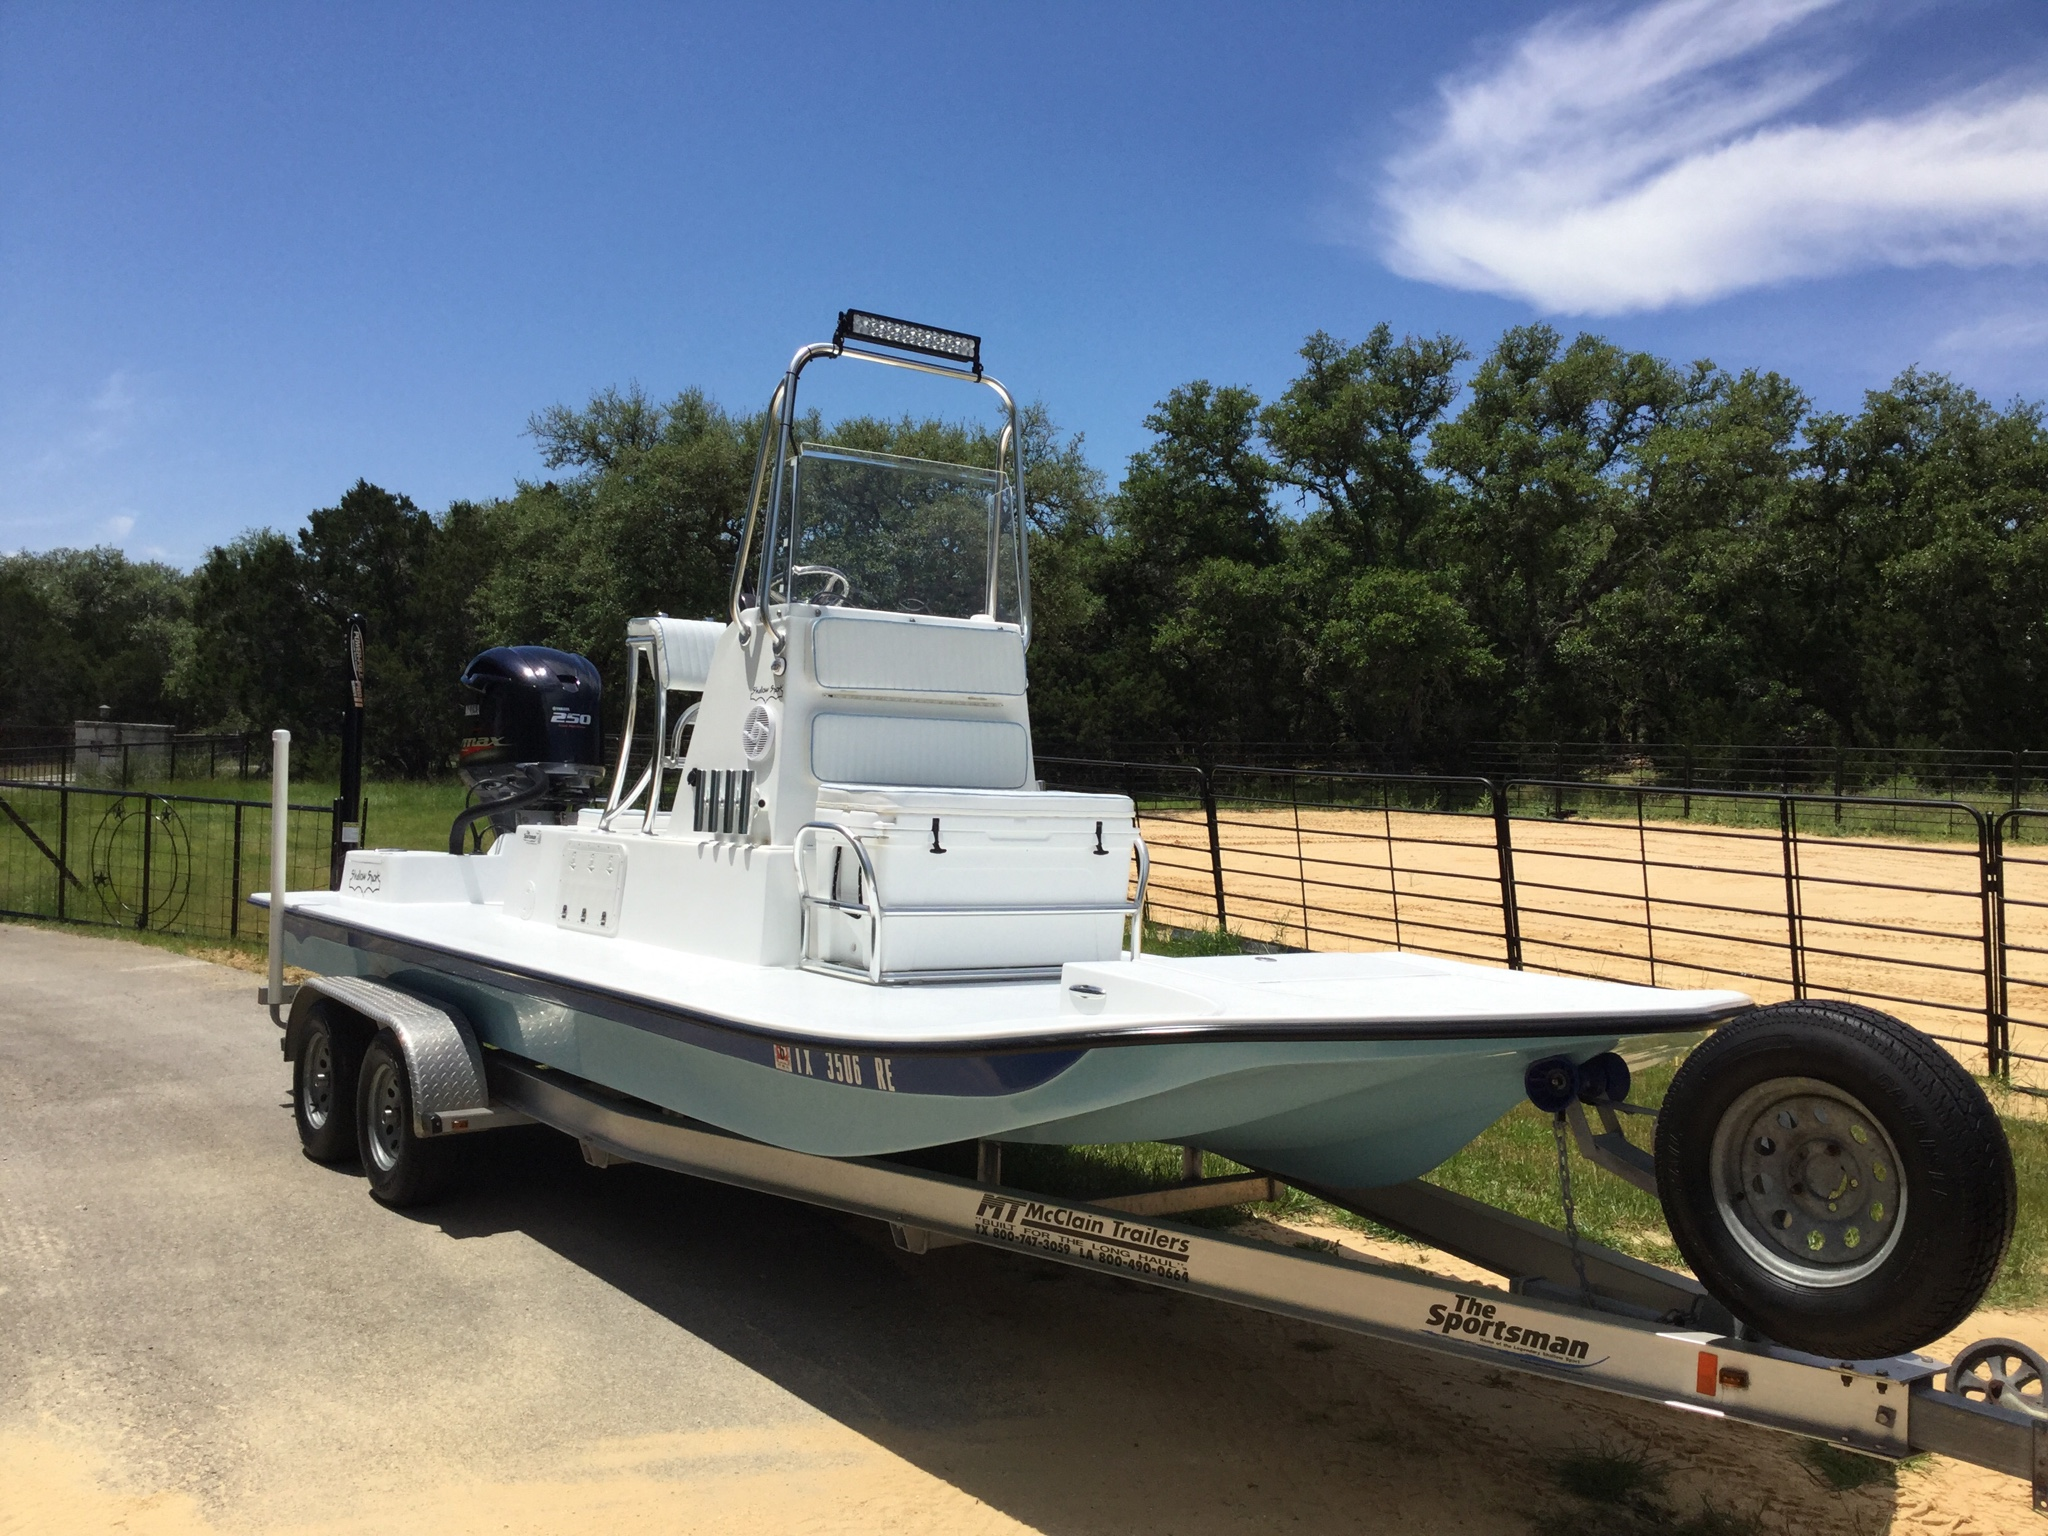 Saltwater boats - Page 2 - TexasBowhunter com Community Discussion